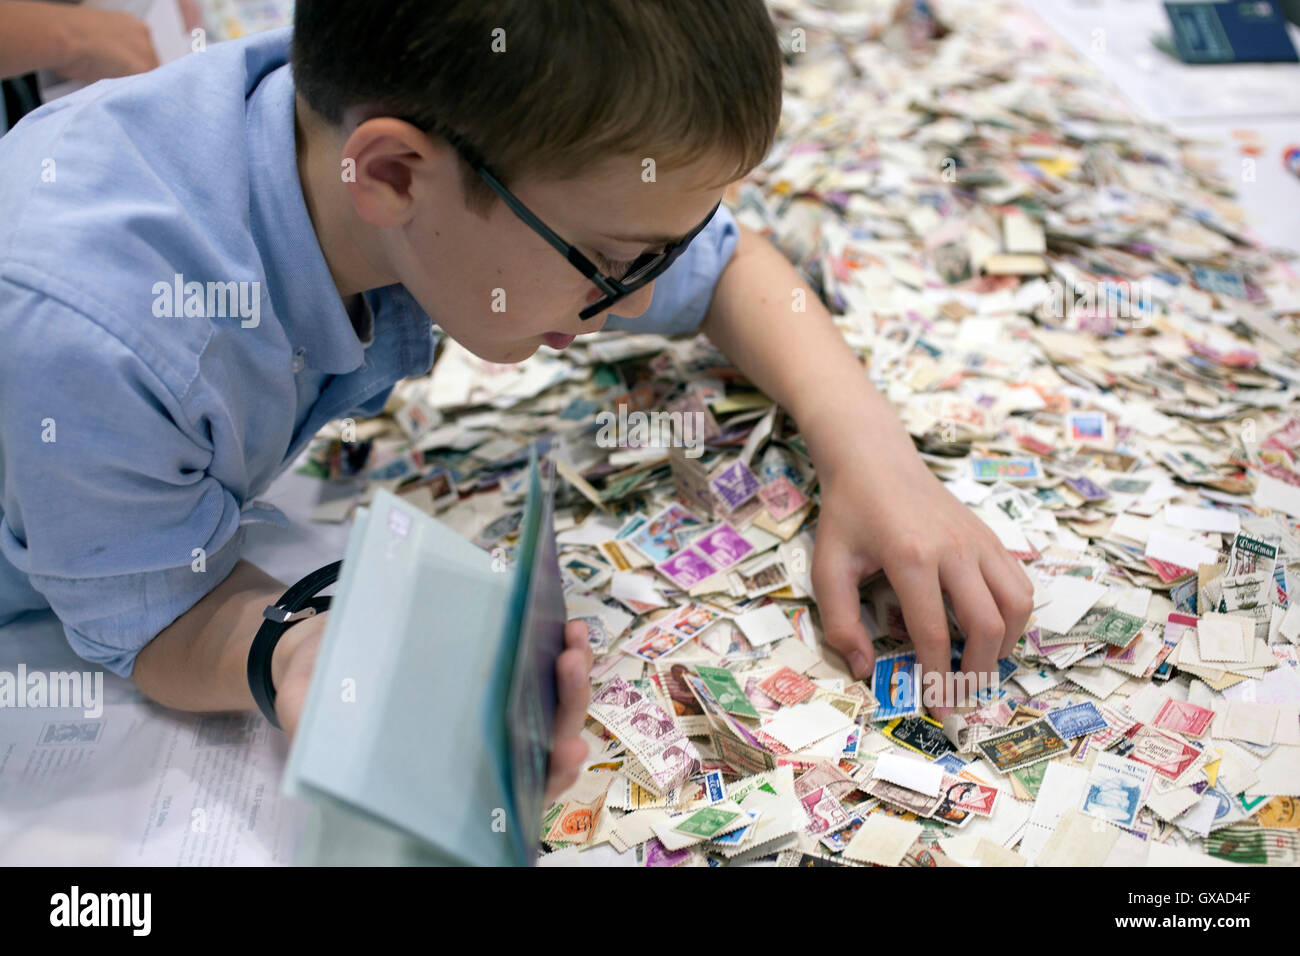 World Stamp Show-NY 2016 youth section for young stamp collectors in the NYC Javits Convention Center. Stock Photo